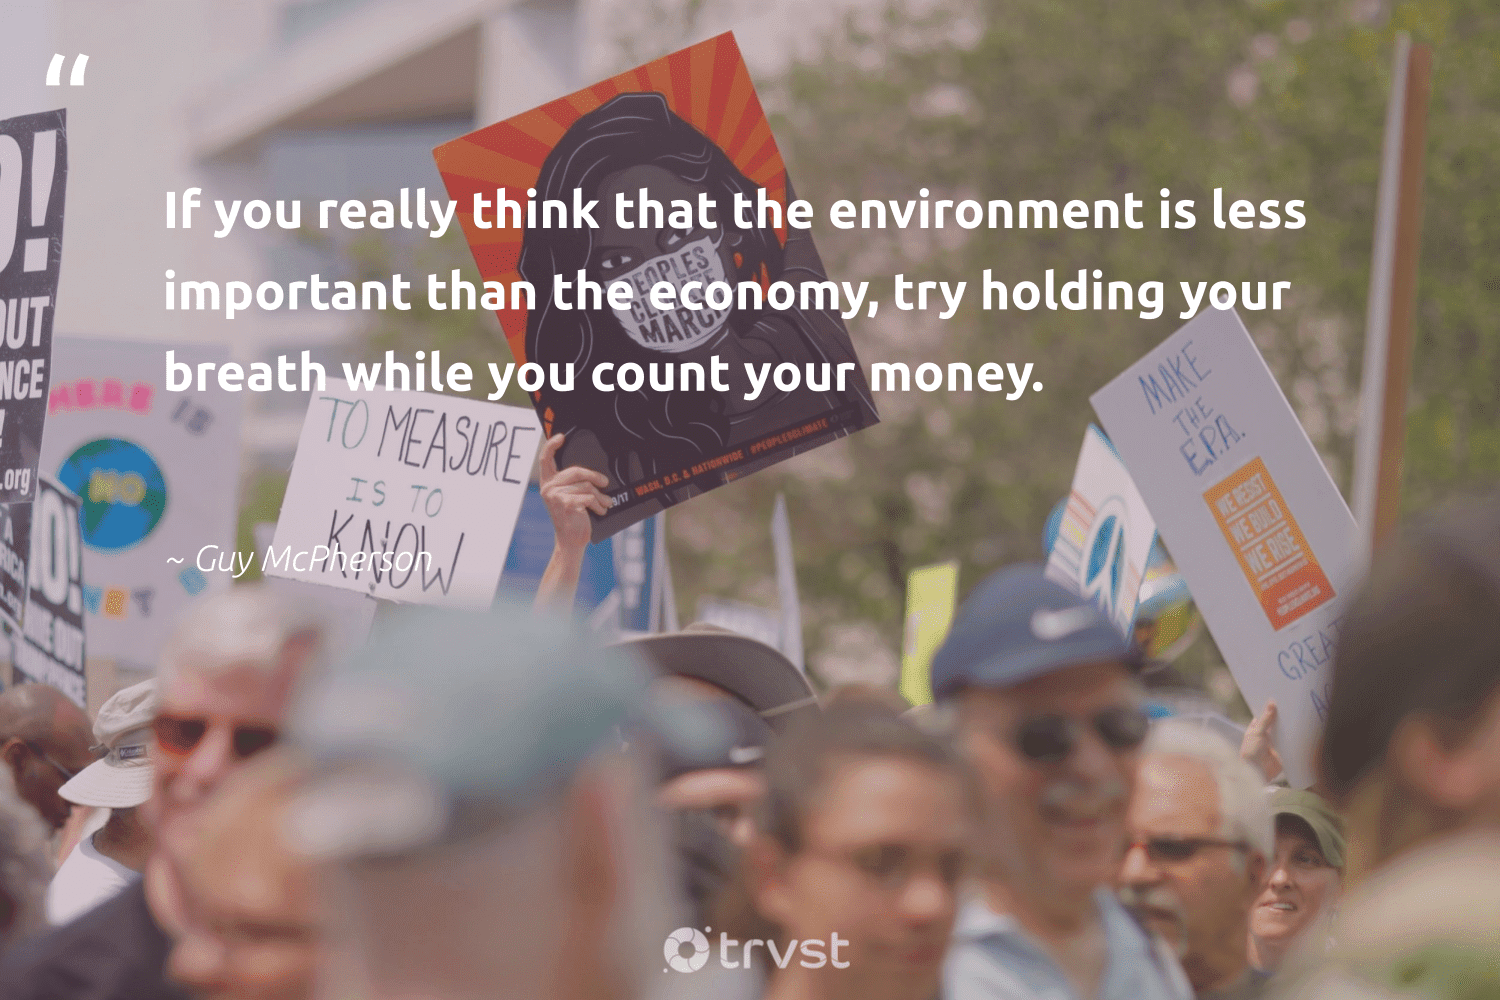 """""""If you really think that the environment is less important than the economy, try holding your breath while you count your money.""""  - Guy McPherson  #trvst #quotes #environment #conservation #climatechangeisreal #sustainableliving #bethechange #planet #climateaction #savetheplanet #impact #earth"""